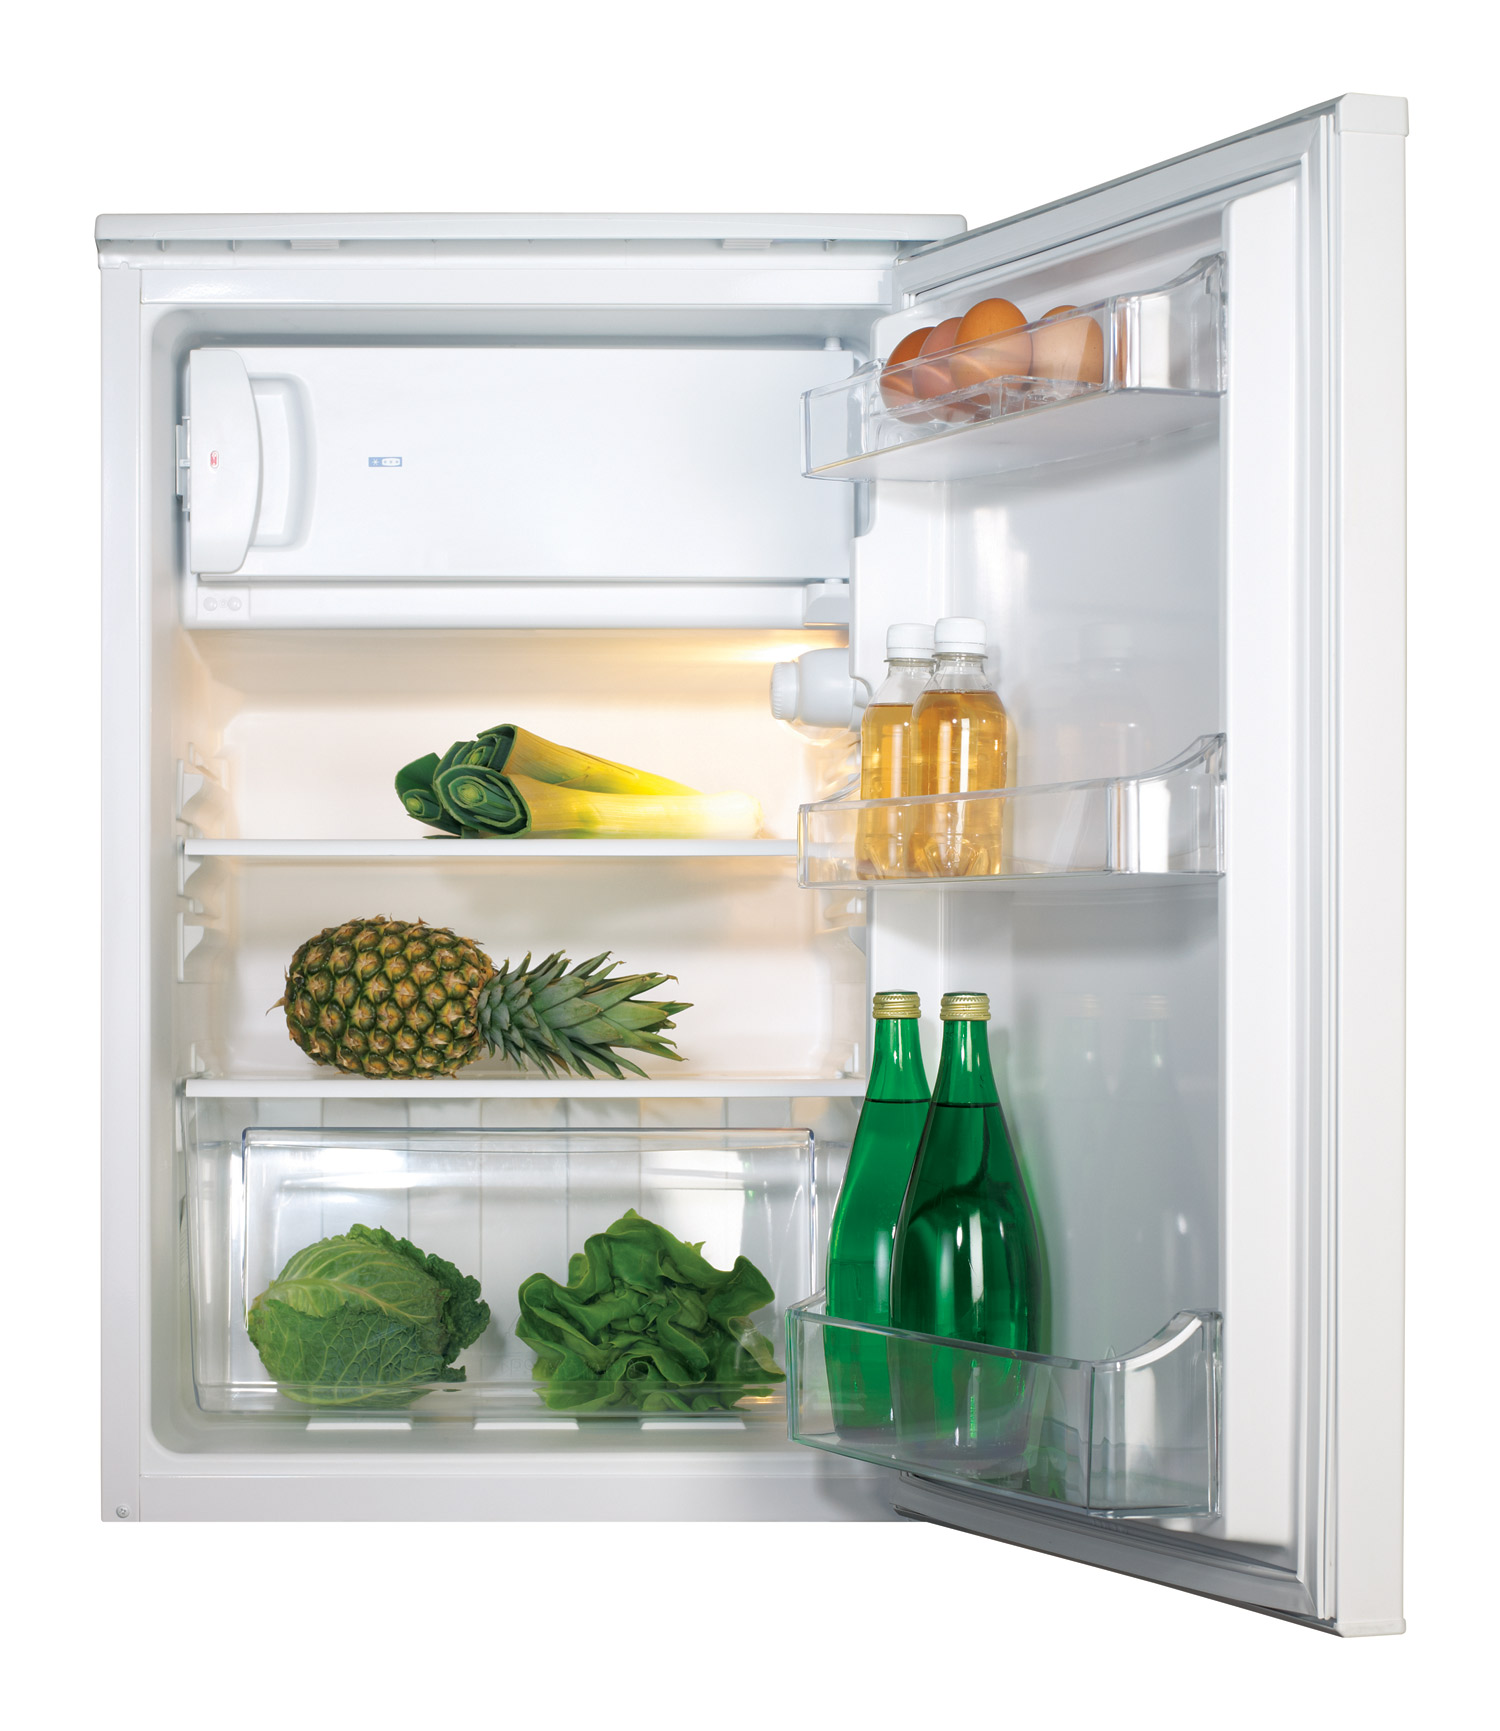 CDA Freestanding Under Counter Fridge with Ice Box